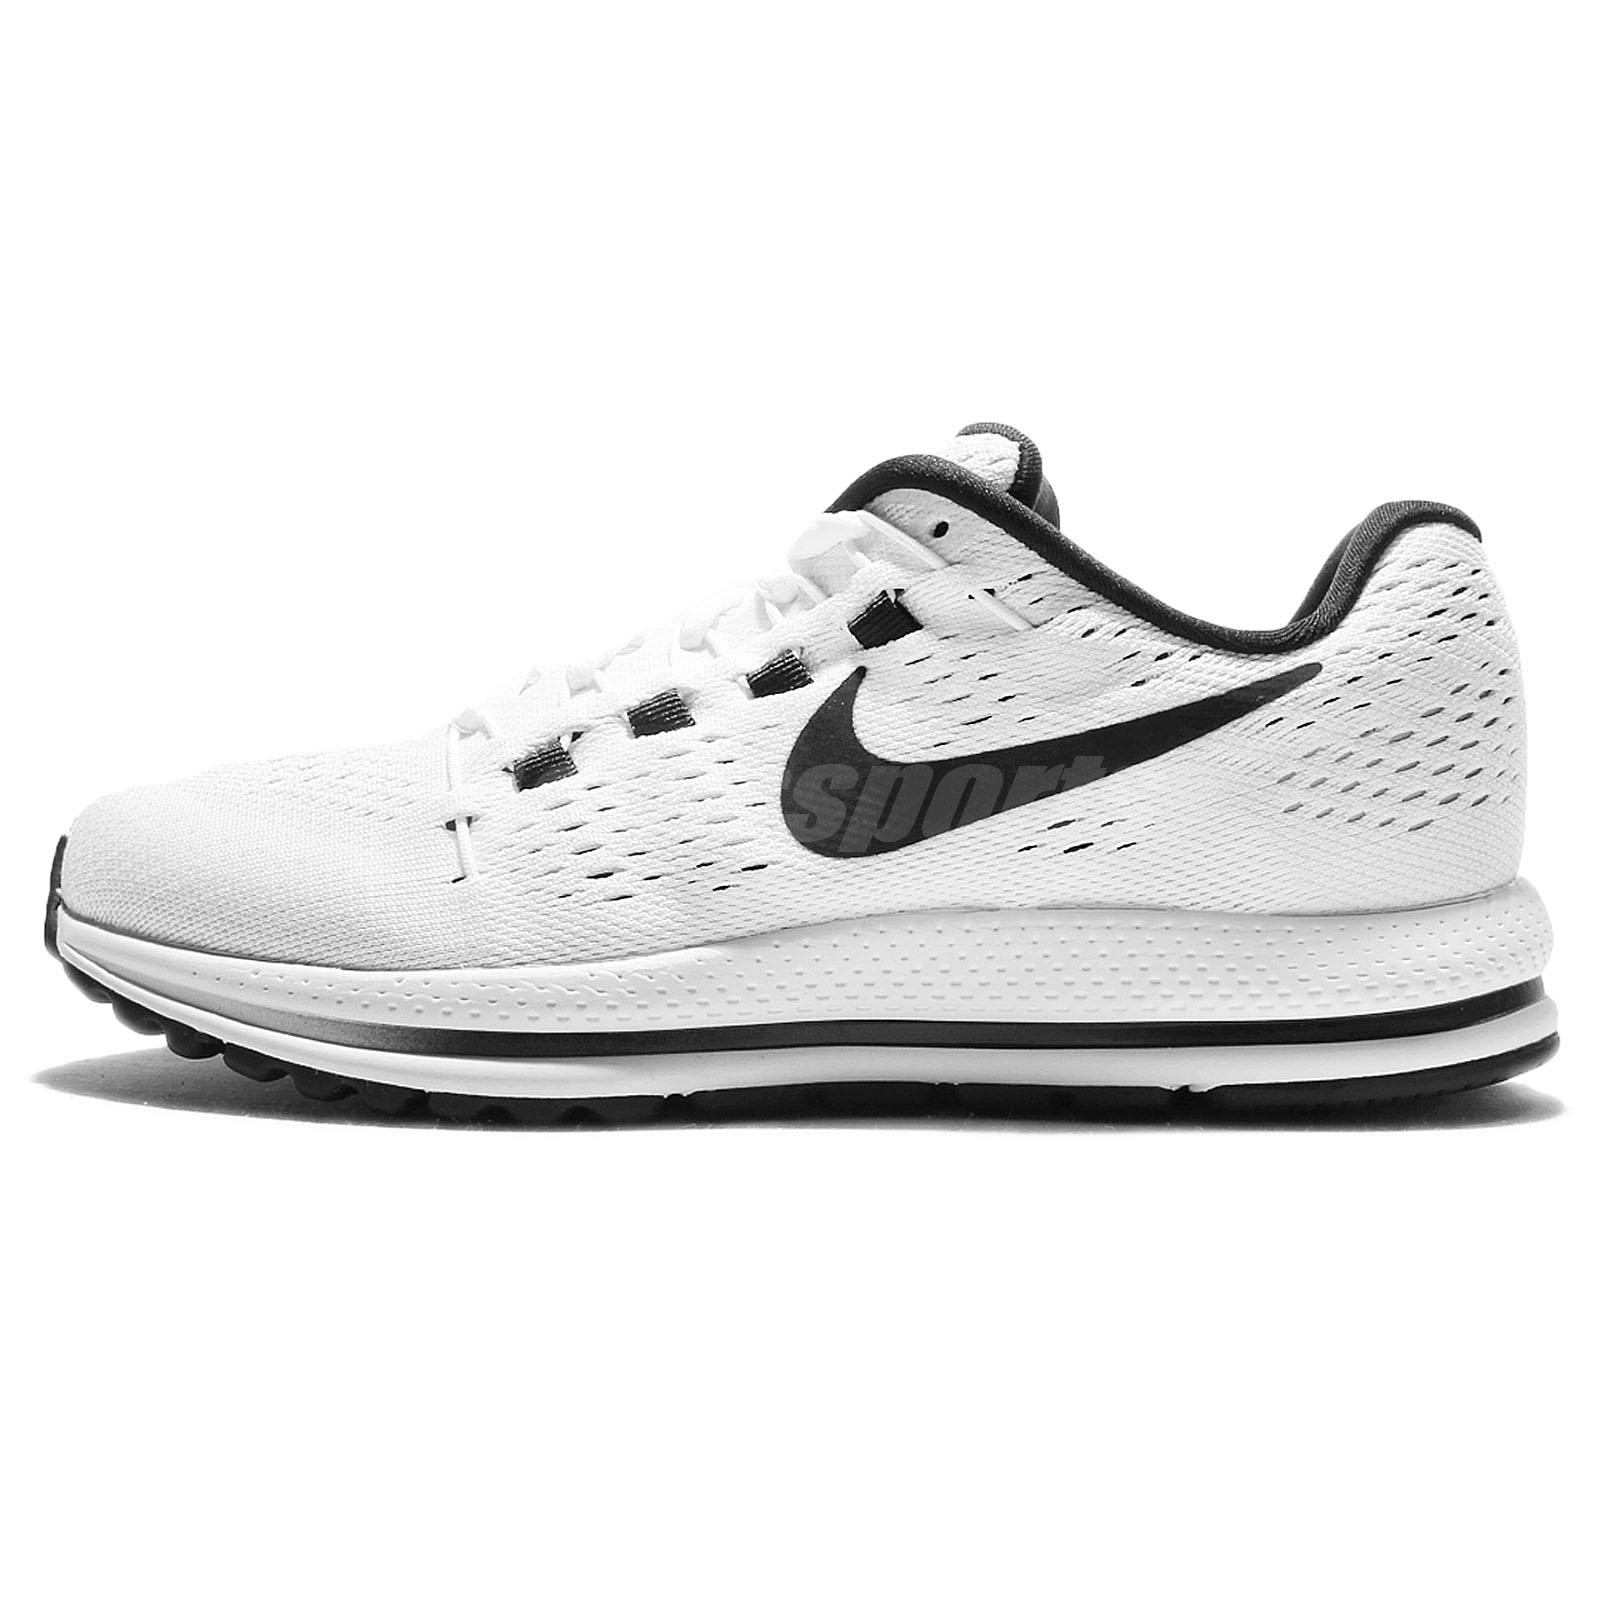 21b2a89ac78 Wmns Nike Air Zoom Vomero 12 White Black Womens Running Shoes 863766 ...